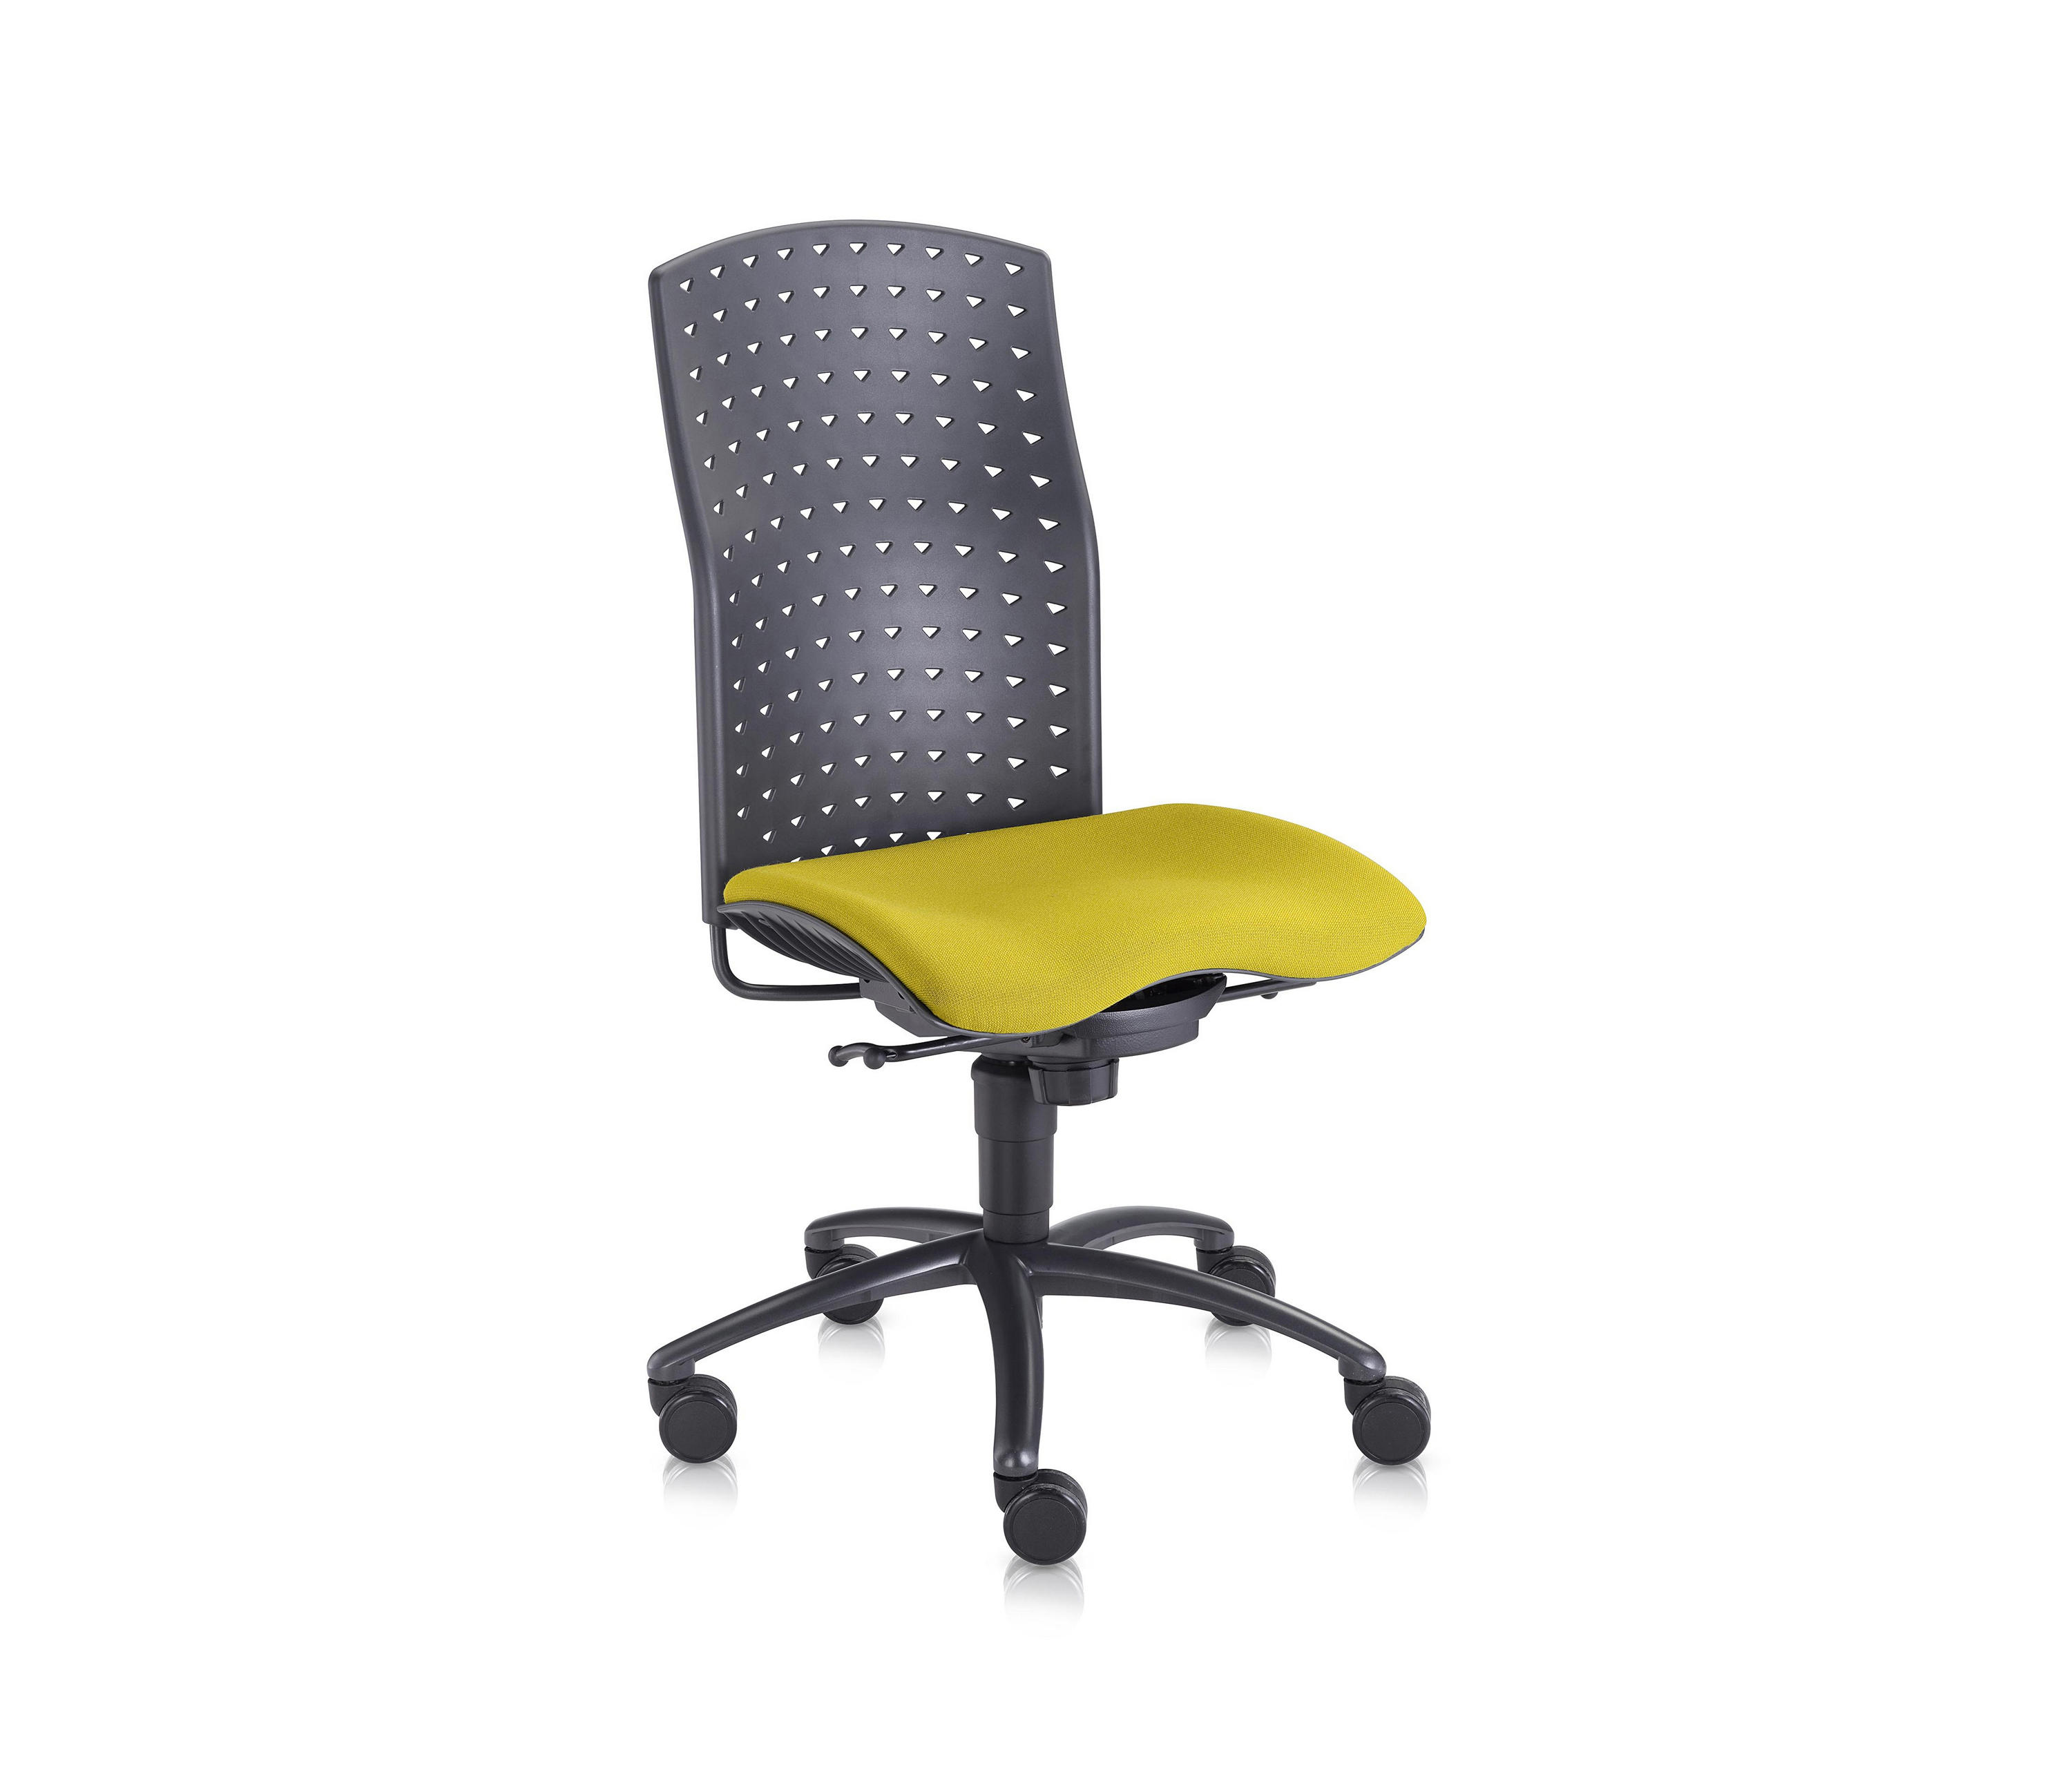 SITAG REALITY SWIVEL CHAIR - Task chairs from Sitag | Architonic